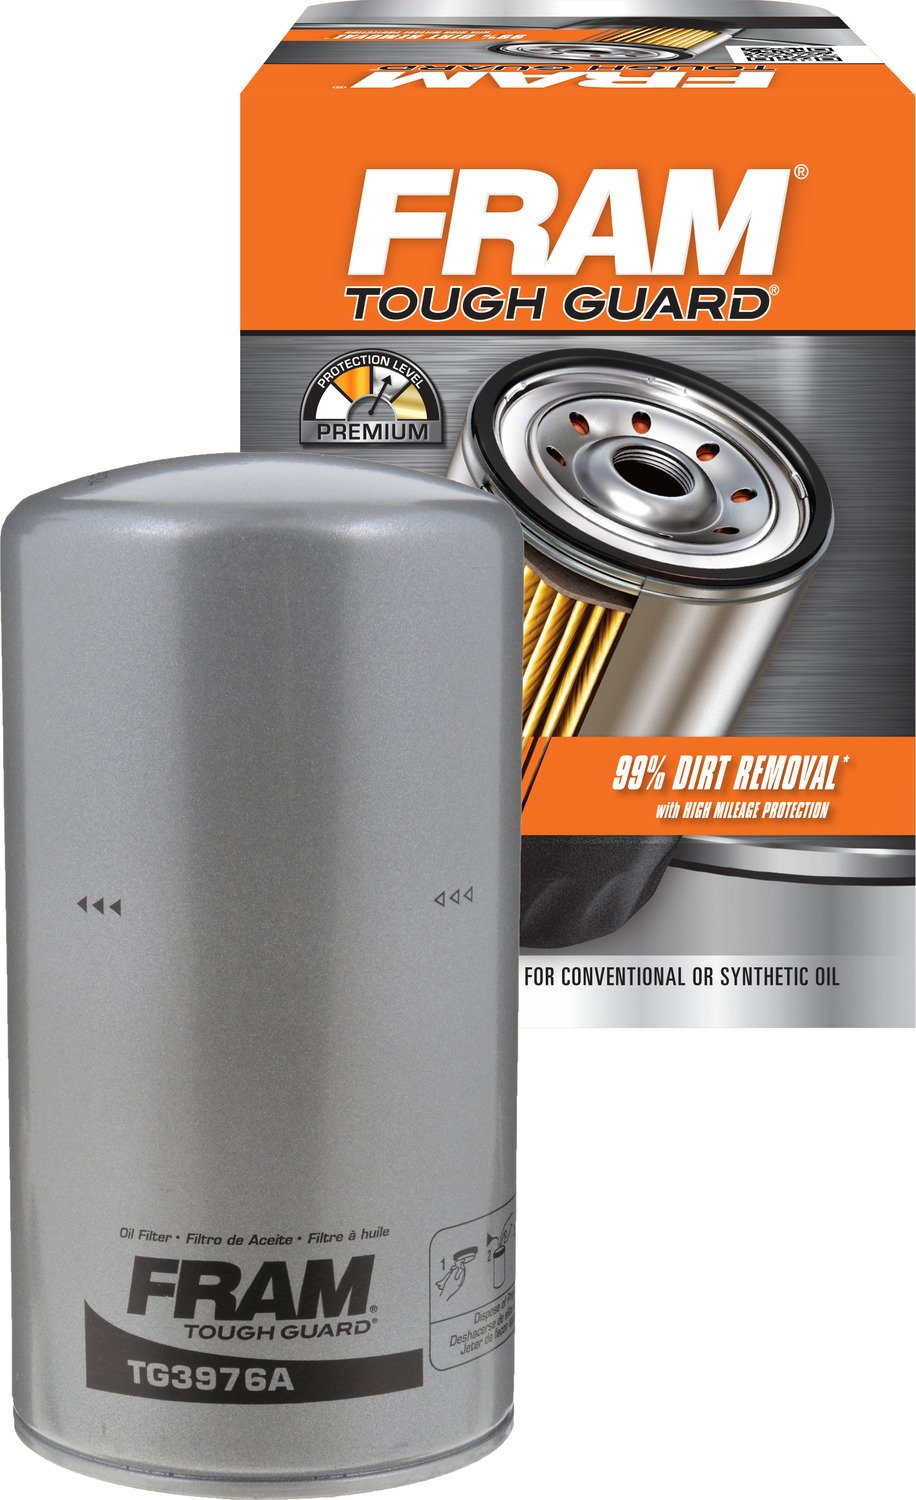 FRAM TG3976A Tough Guard Spin-on Oil Filter